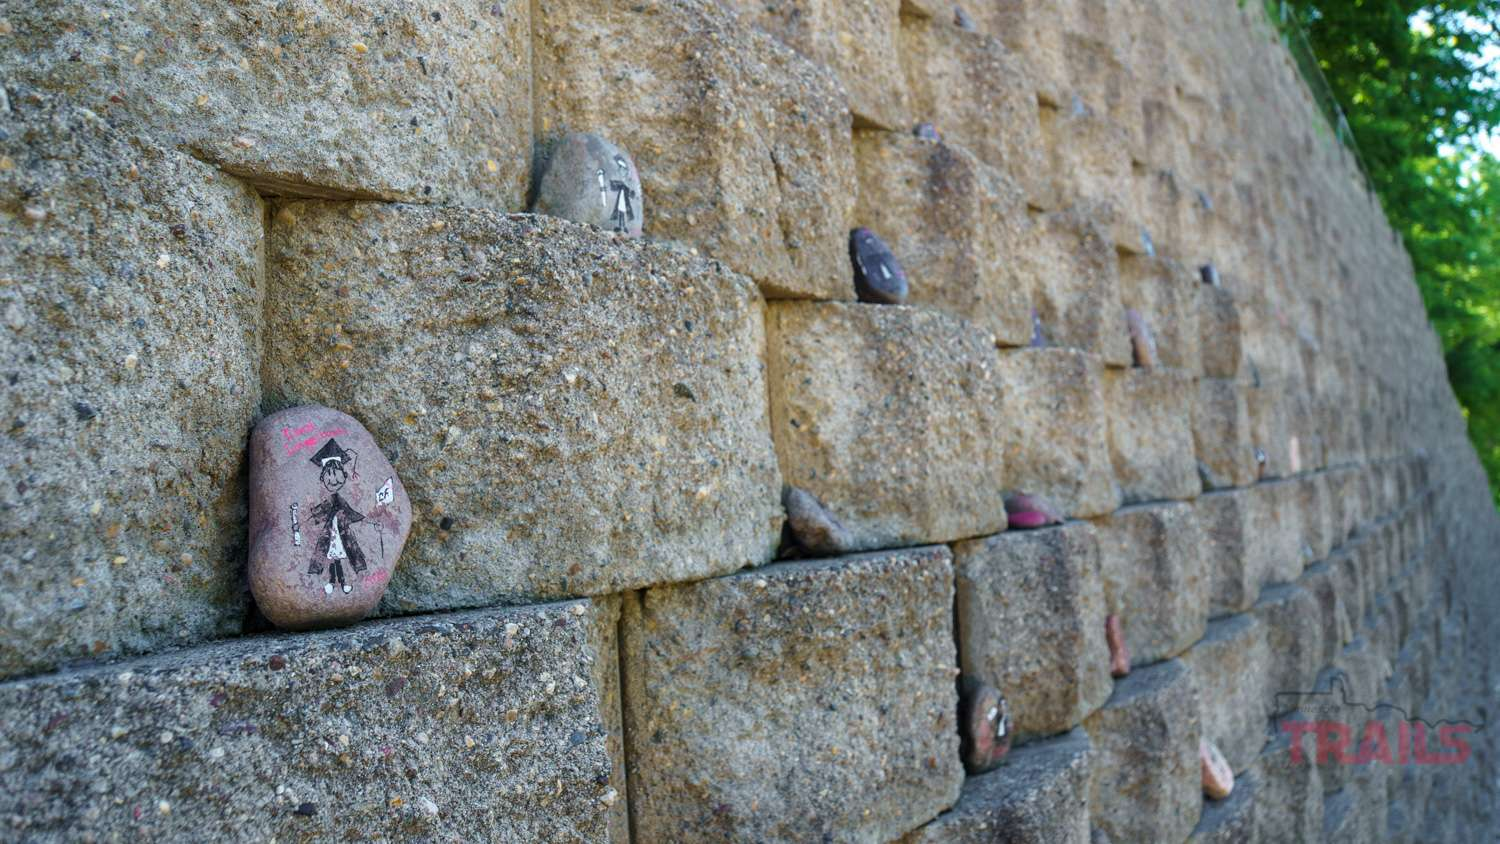 Decoratively handpainted rocks nestled into the cracks of a block wall